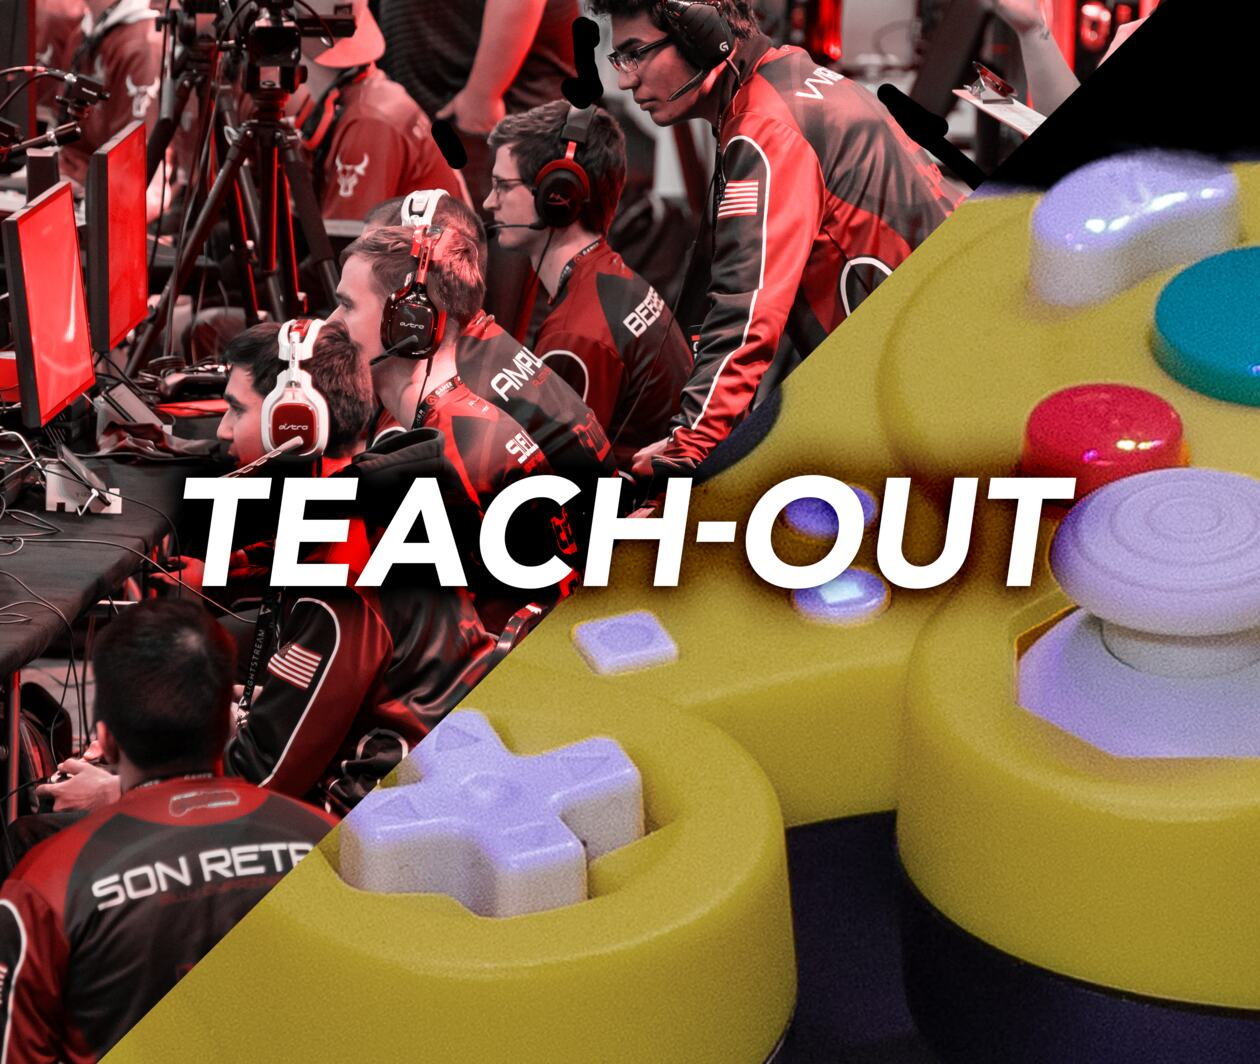 Esports: Leveling Up Teach-Out